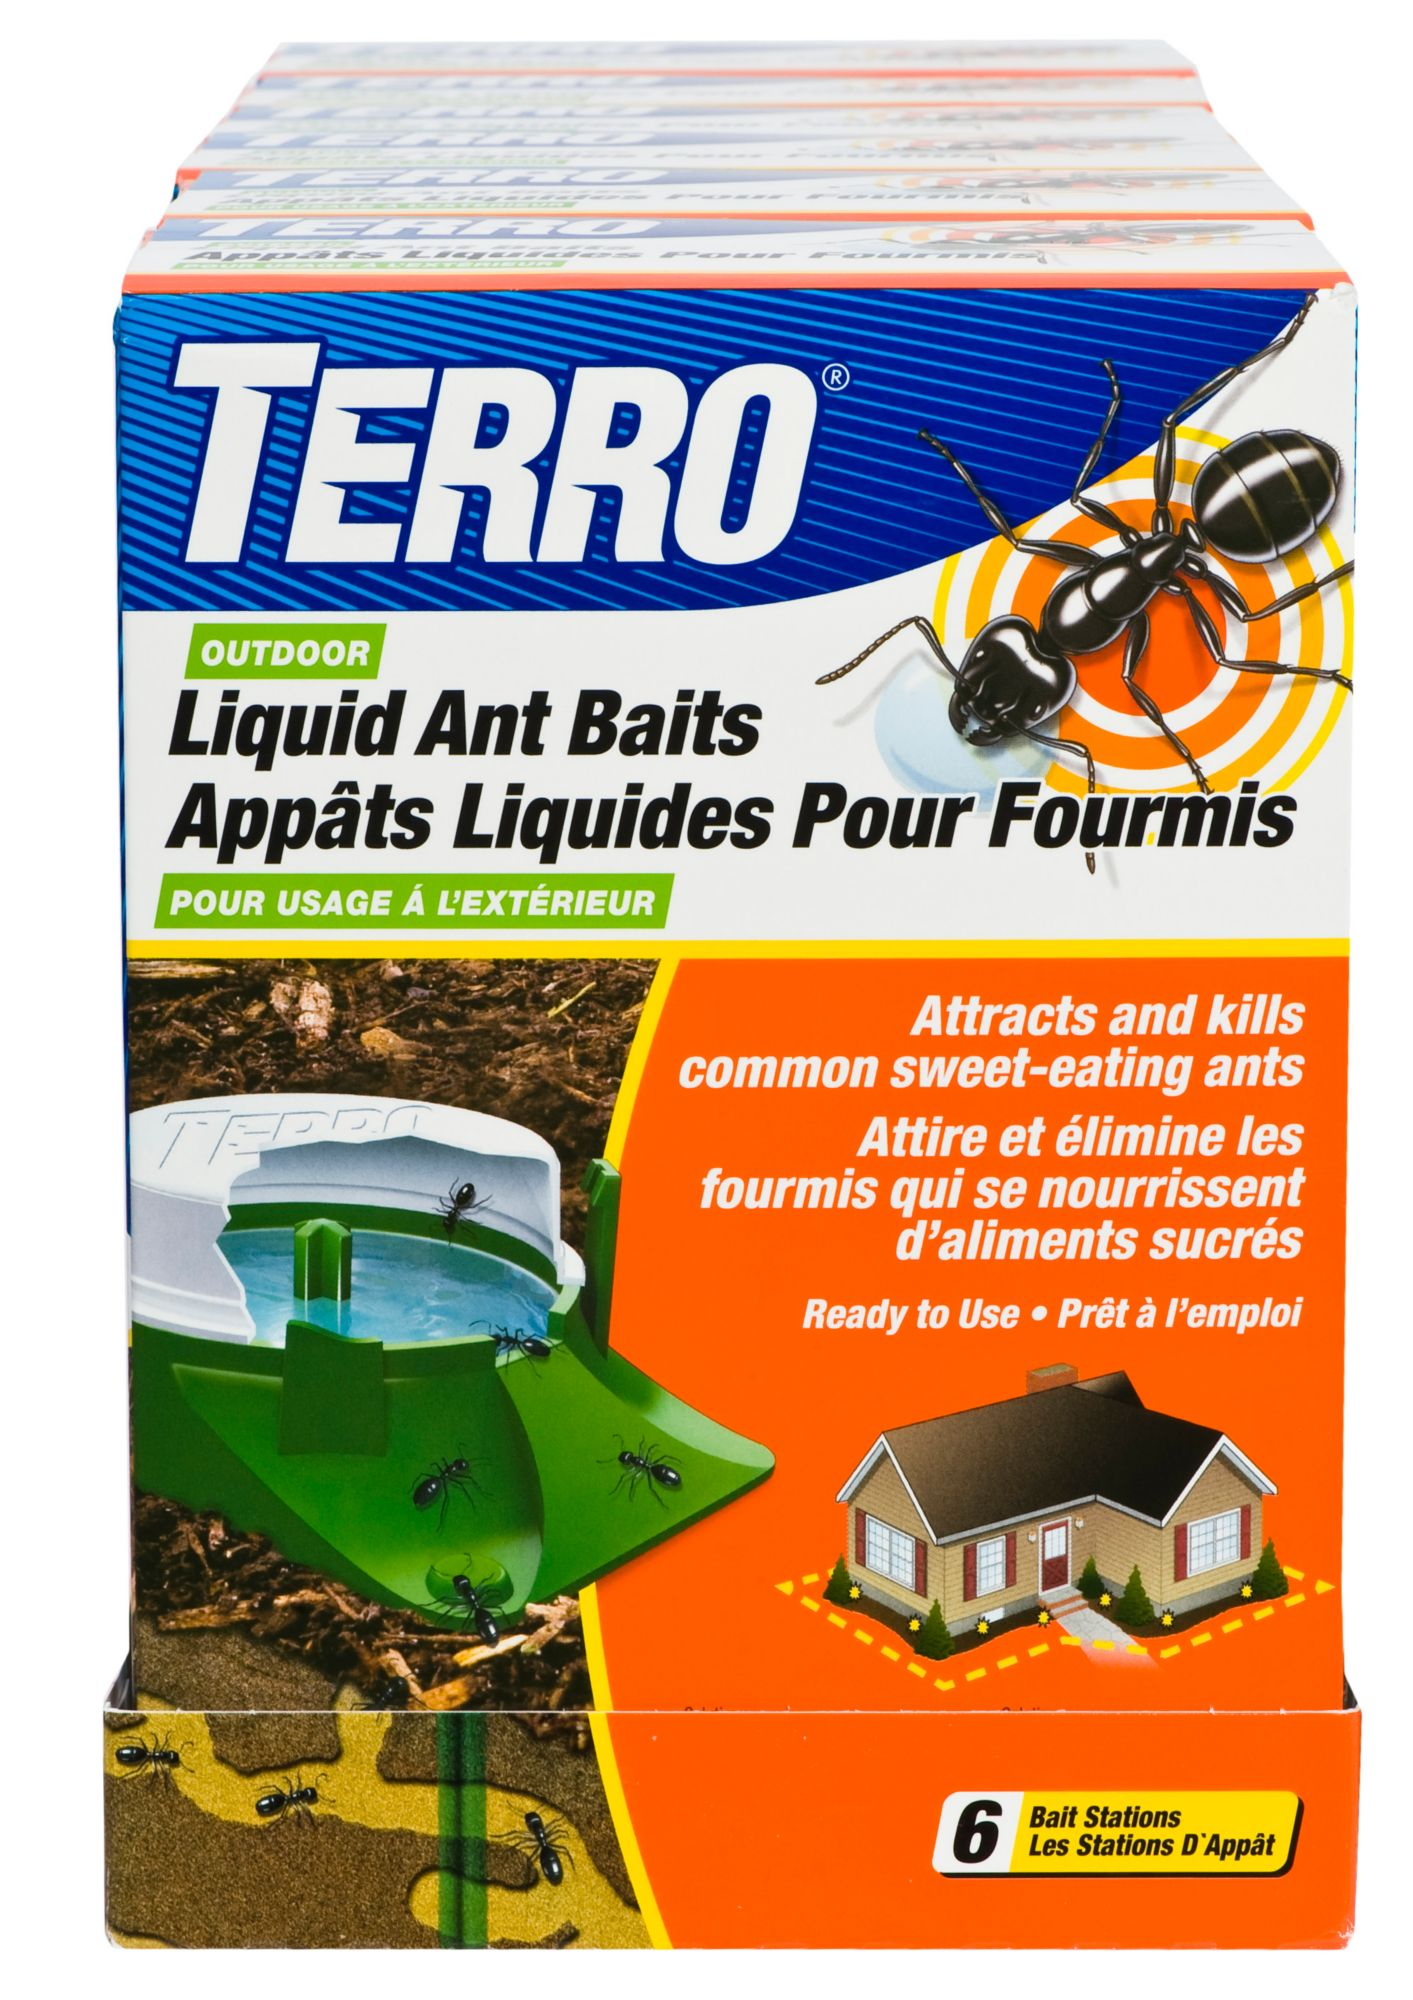 Outdoor Ant Control Terro Bait Stations